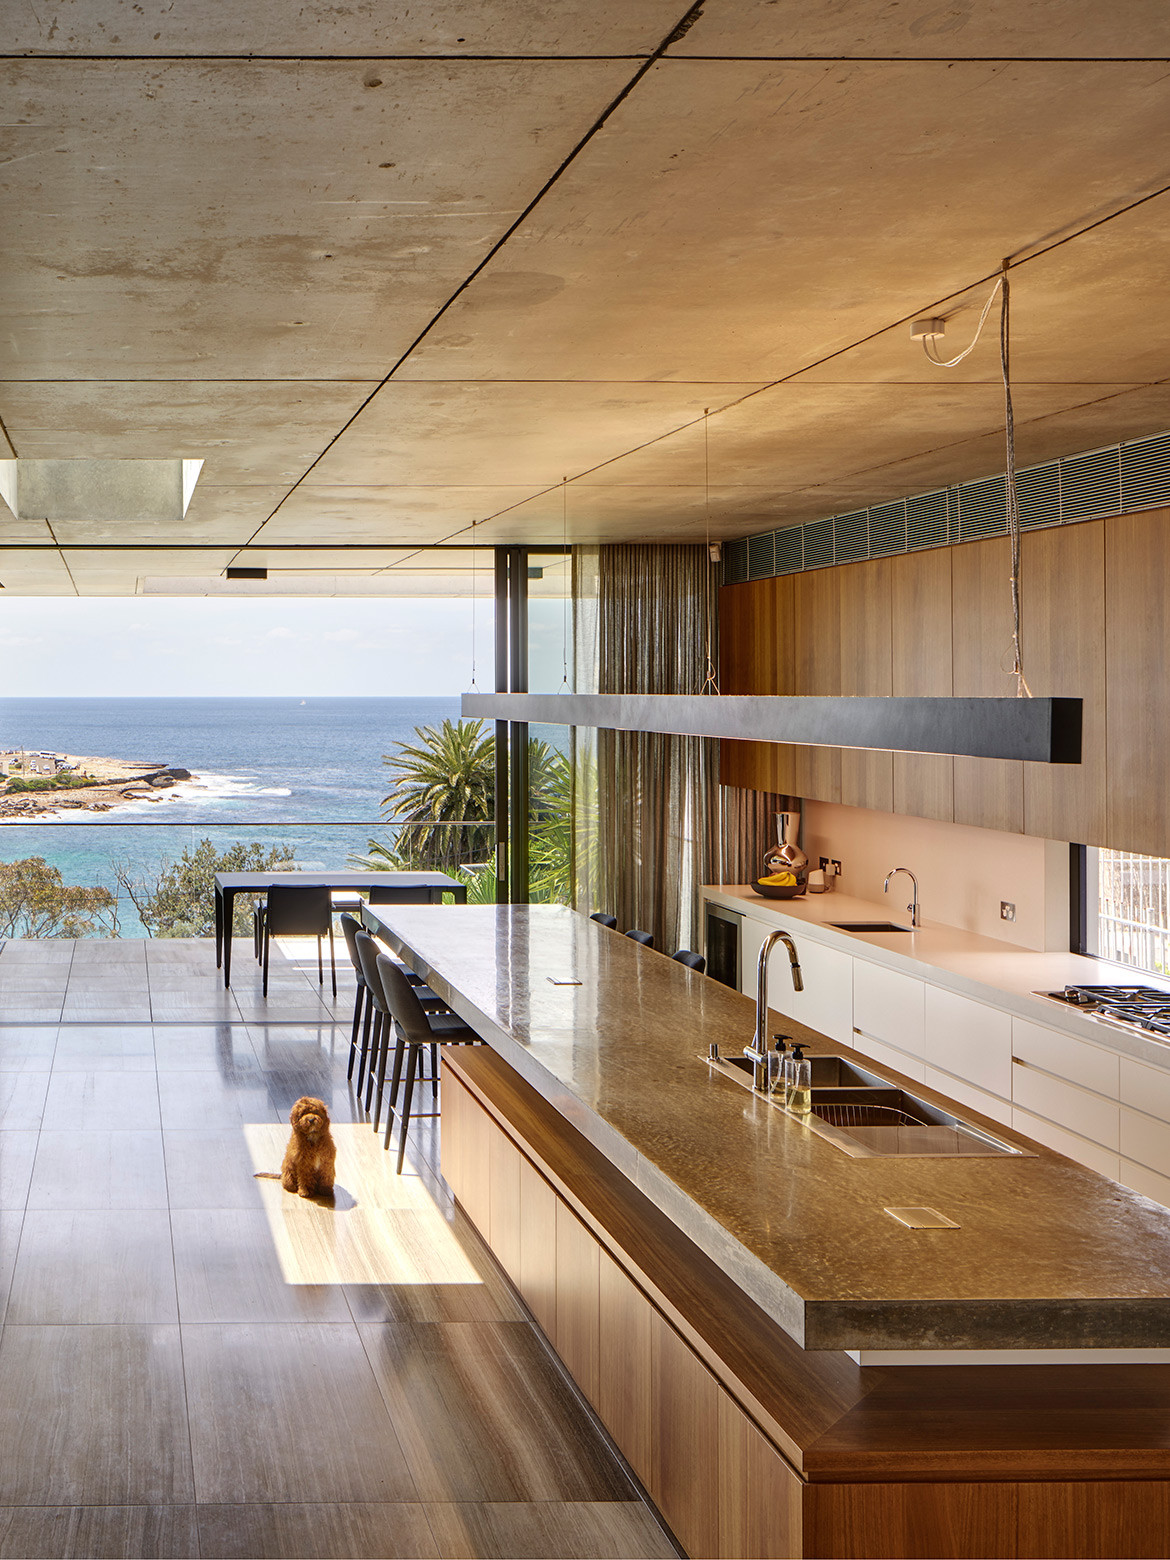 Worldstone Cesar White marble floor tiles complements the concrete ceiling of Gordons Bay House by PopovBass featured in Beautifully Brutalist Interiors Of Houses Across Asia Pacific on habitusliving.com cc Michael Nicholson